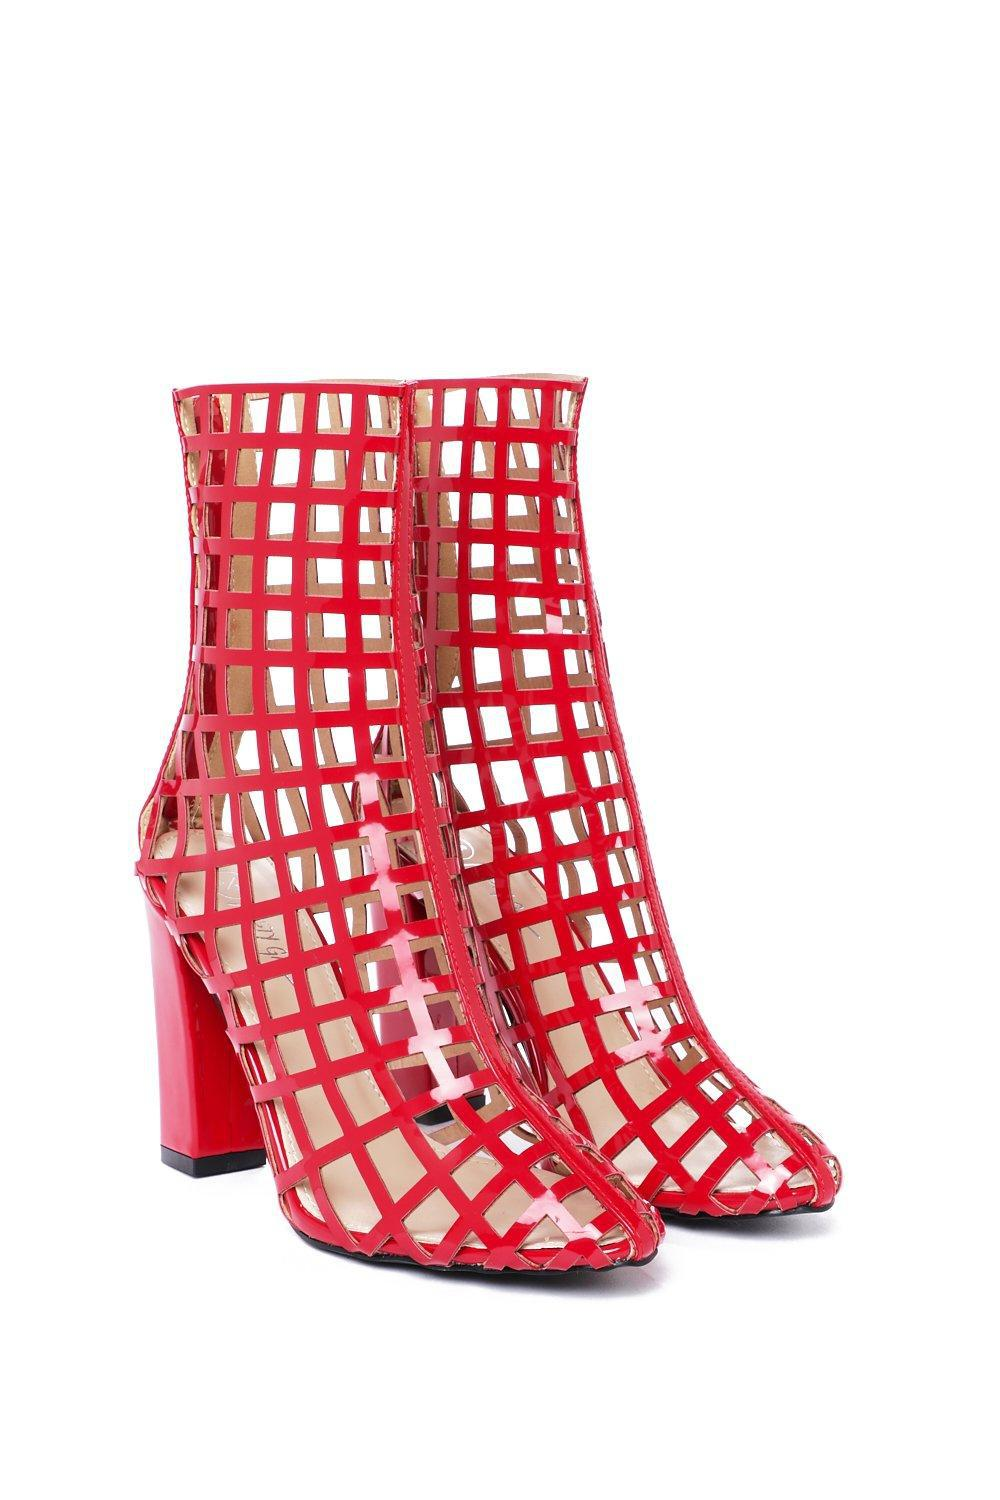 Nasty Gal Synthetic Prisoner Cage Bootie in Red